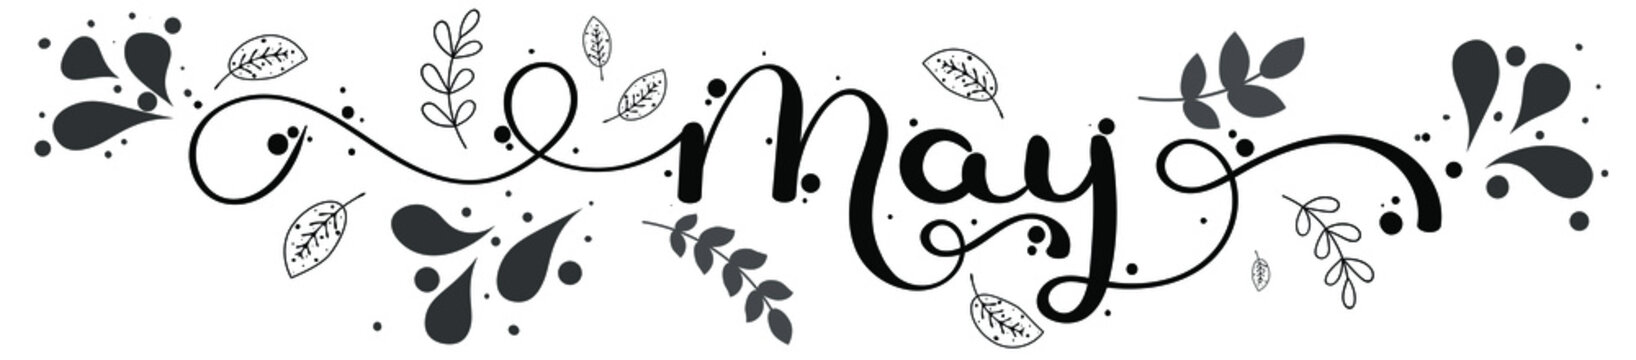 Hello May. MAY month vector with ornaments, flowers and leaves. Decoration floral. Illustration month may